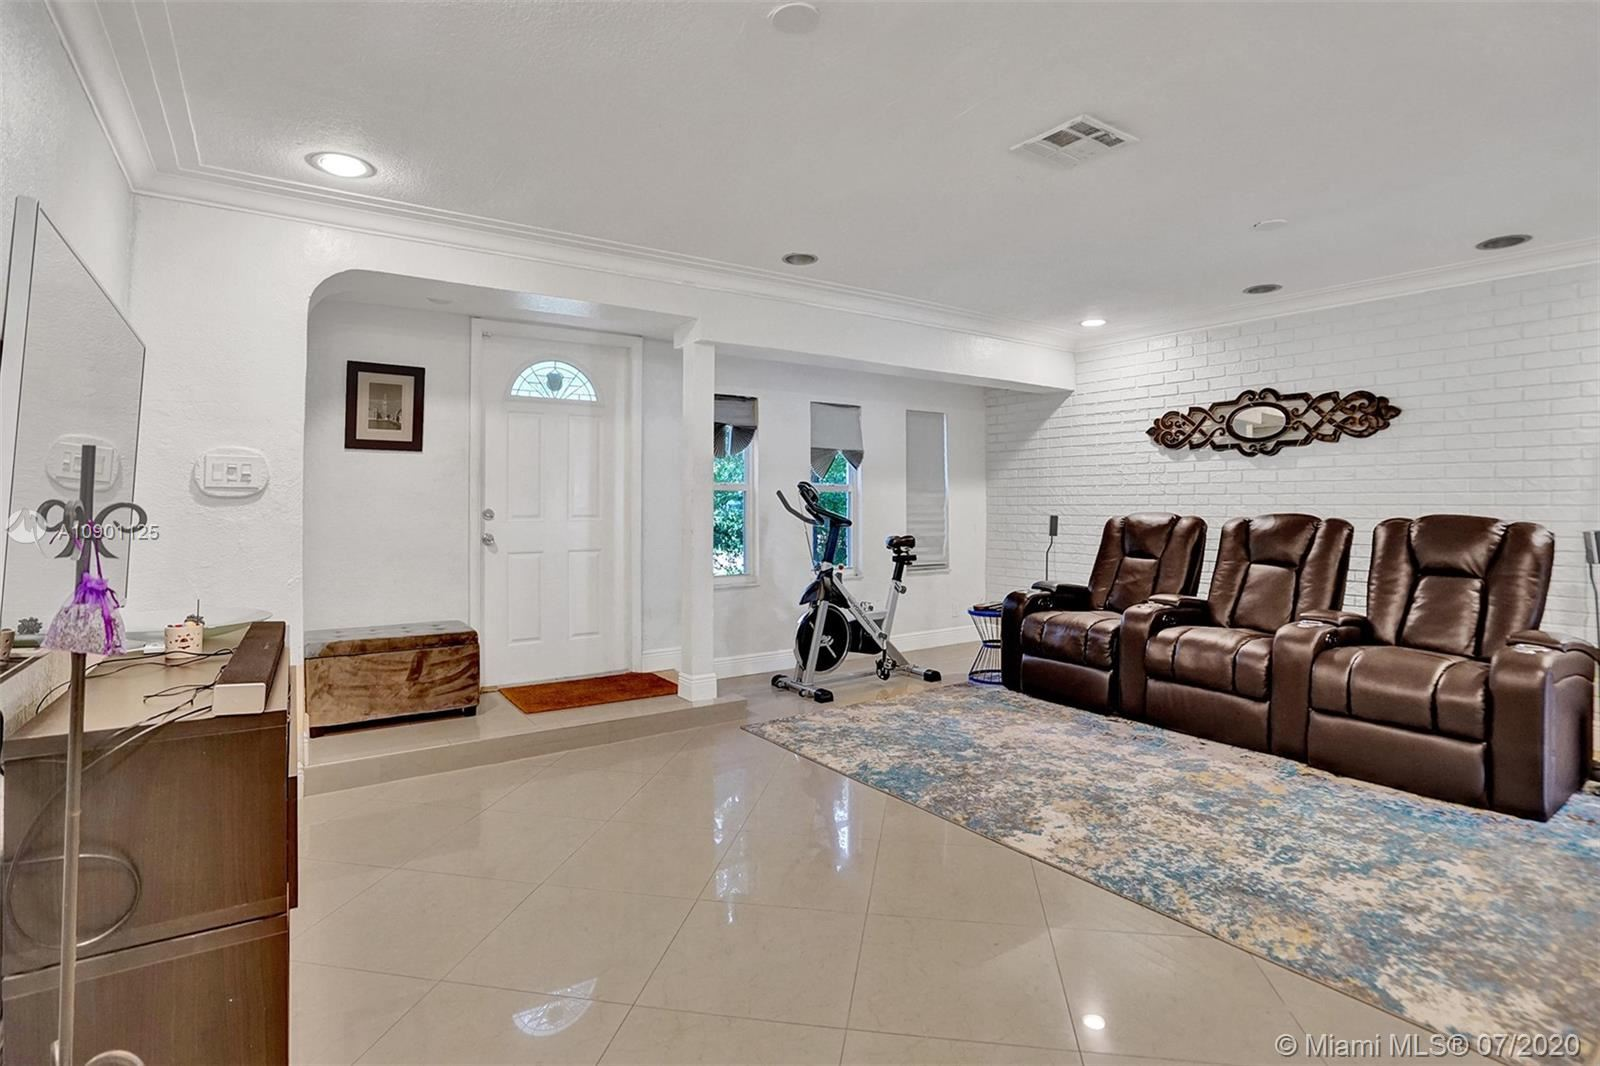 1743 NE 145th St, Miami, FL 33181 - #: A10901125